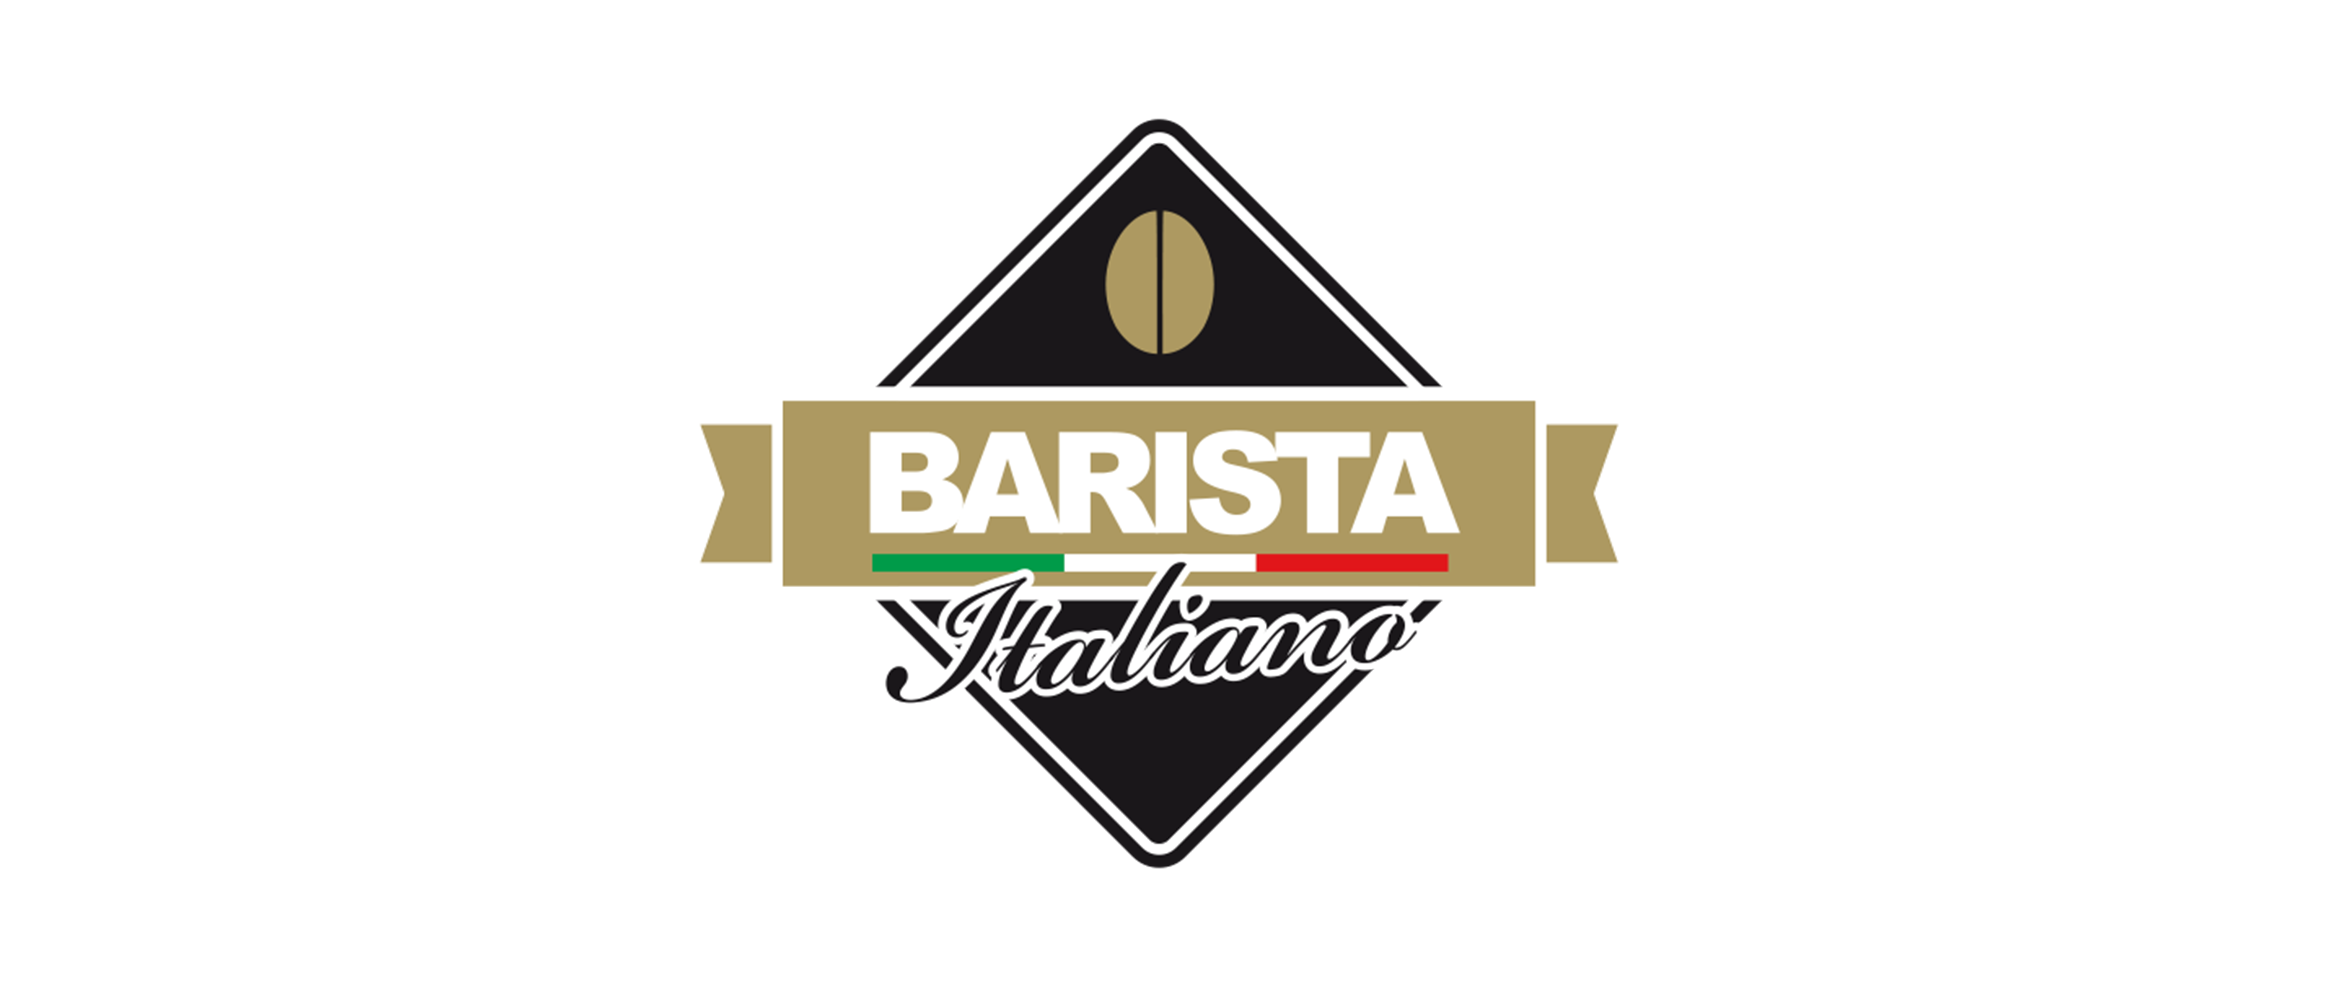 Baristaitaliano